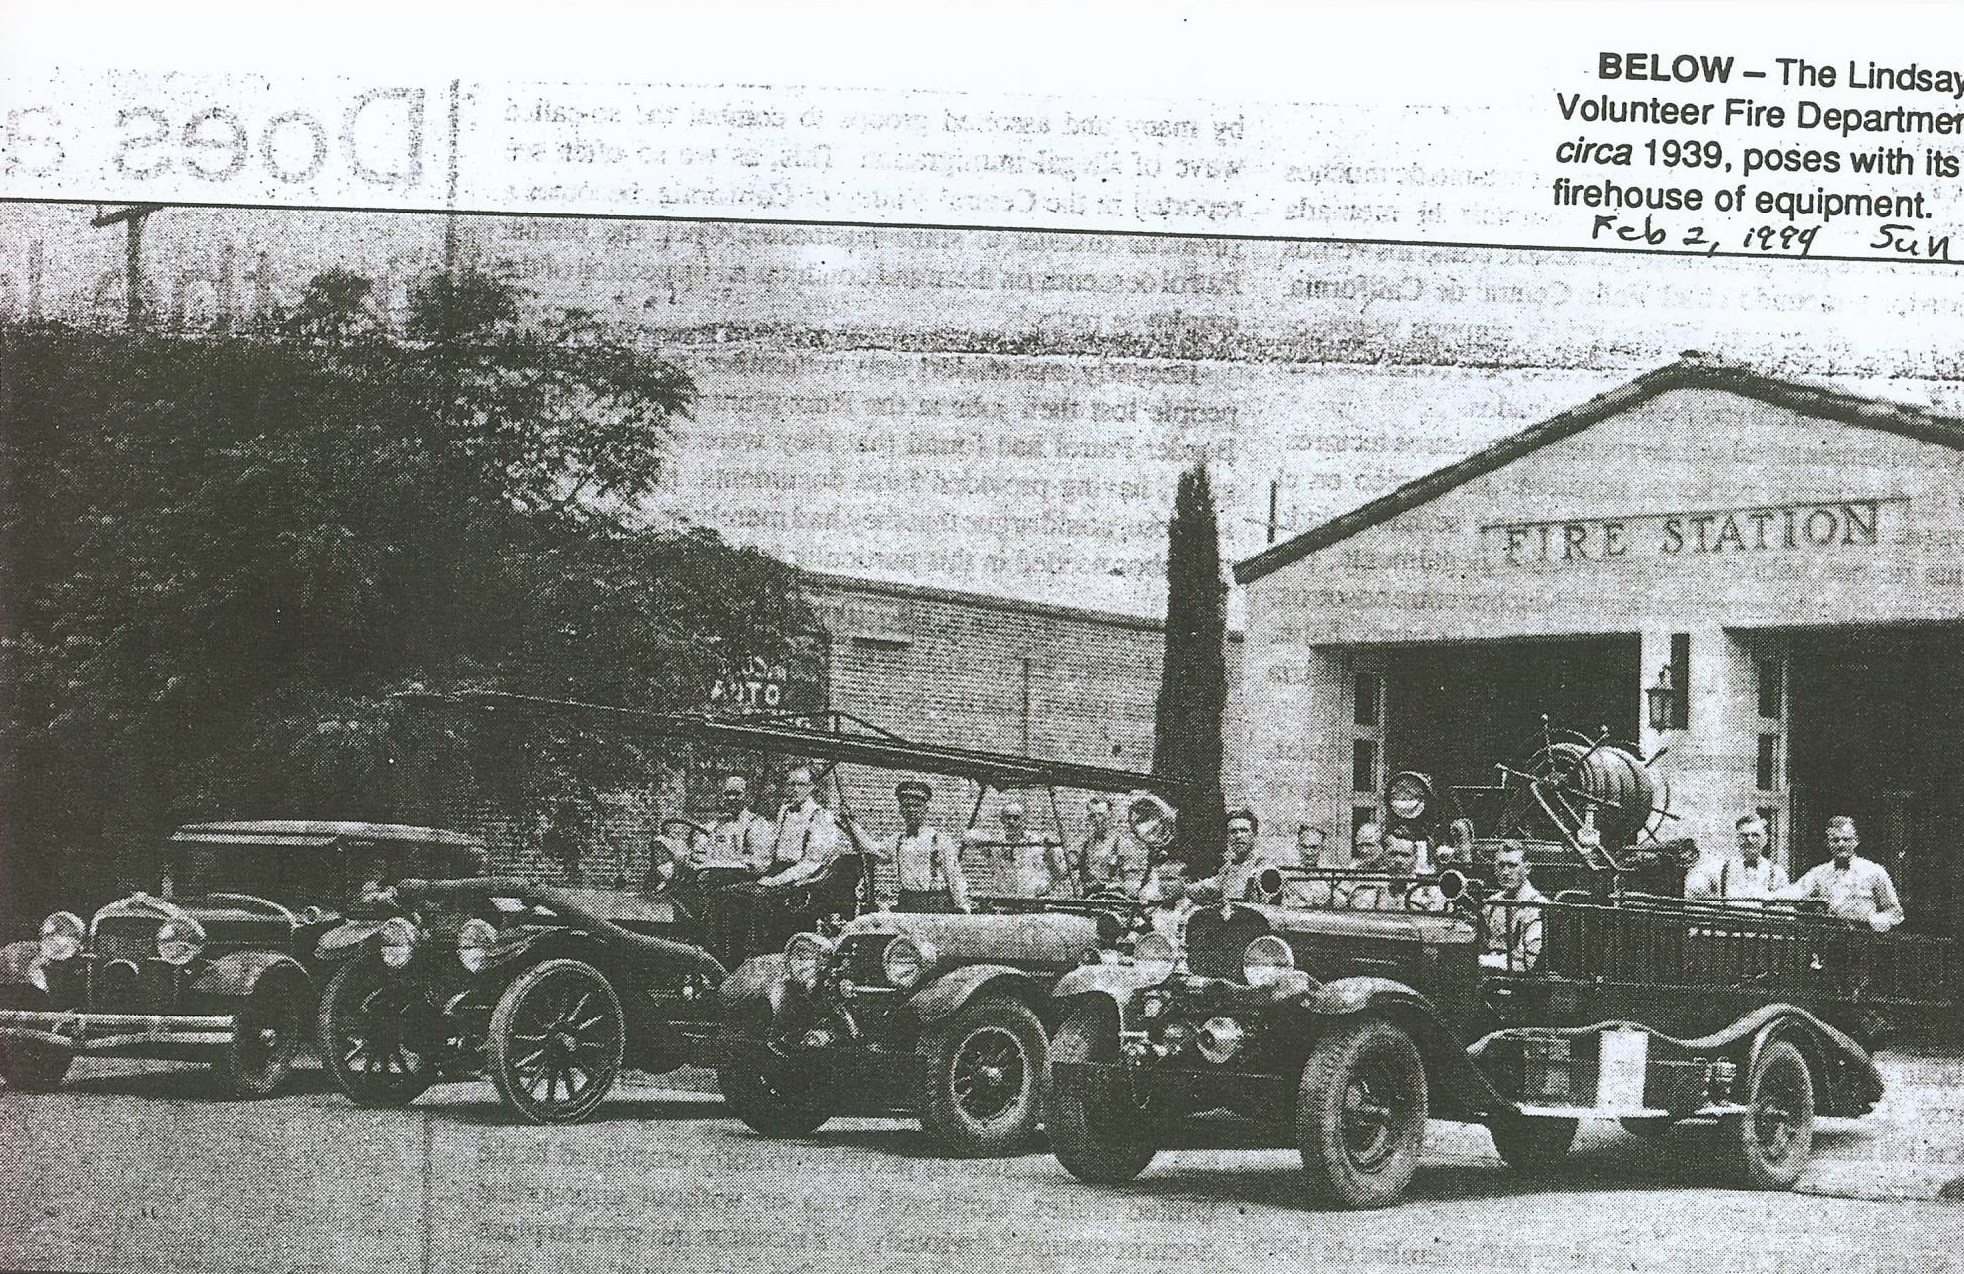 Lindsay fire department 1930's.jpg